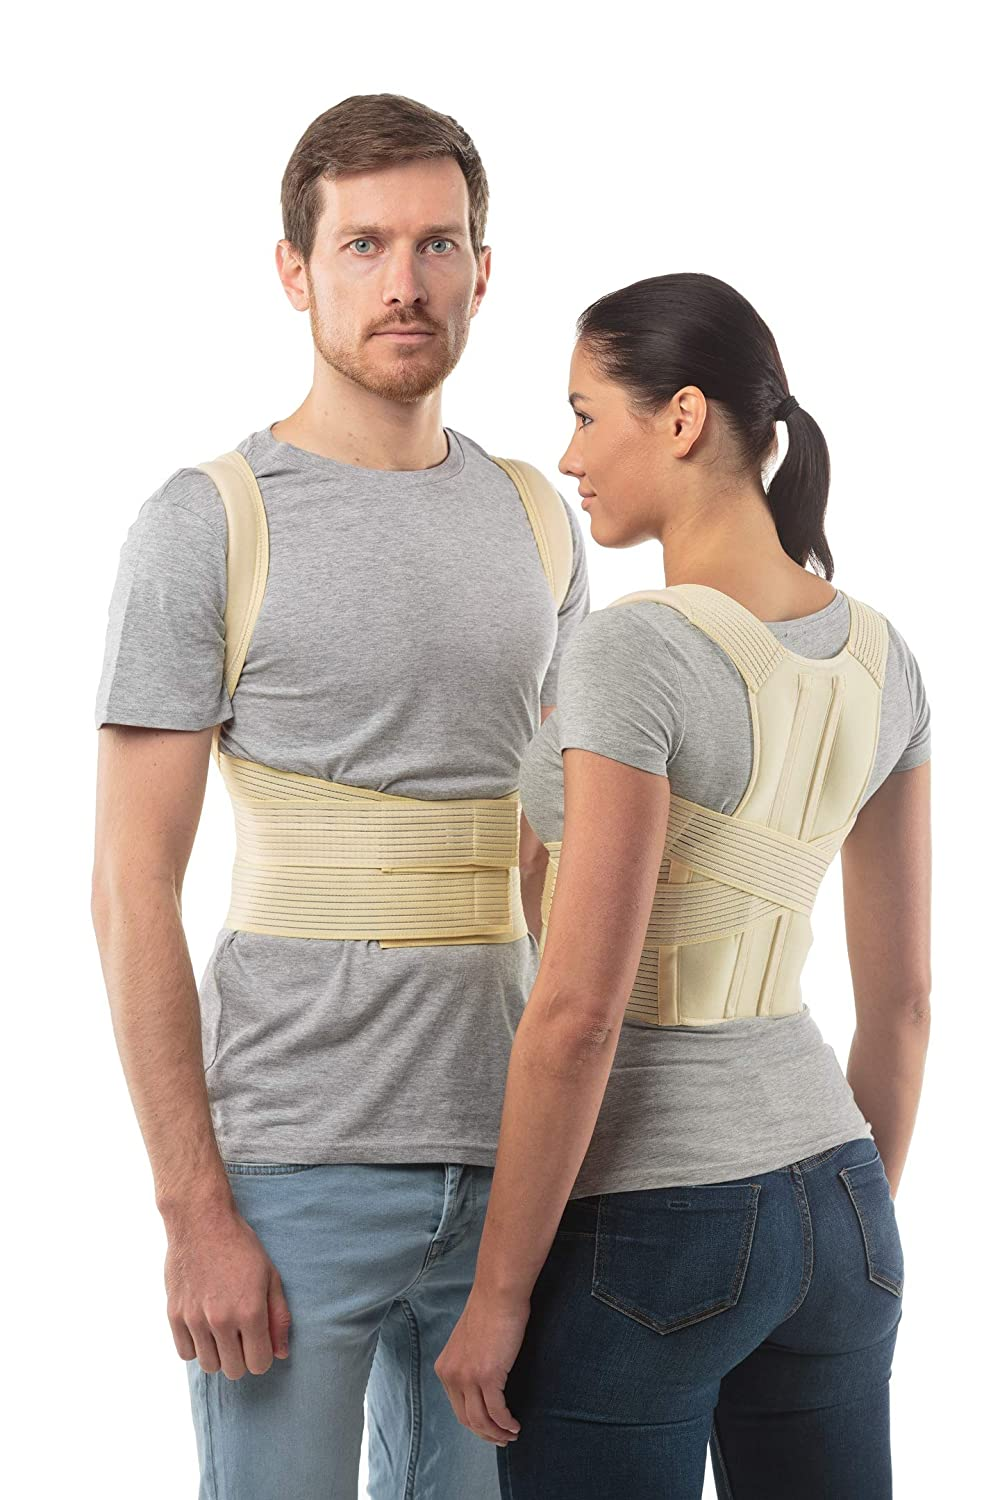 Posture Corrector Back Support Belt By Aheal Medical Orthopedic Under Clothes Back Brace Spine Corrector For Men And Women Lower Pectoral And The